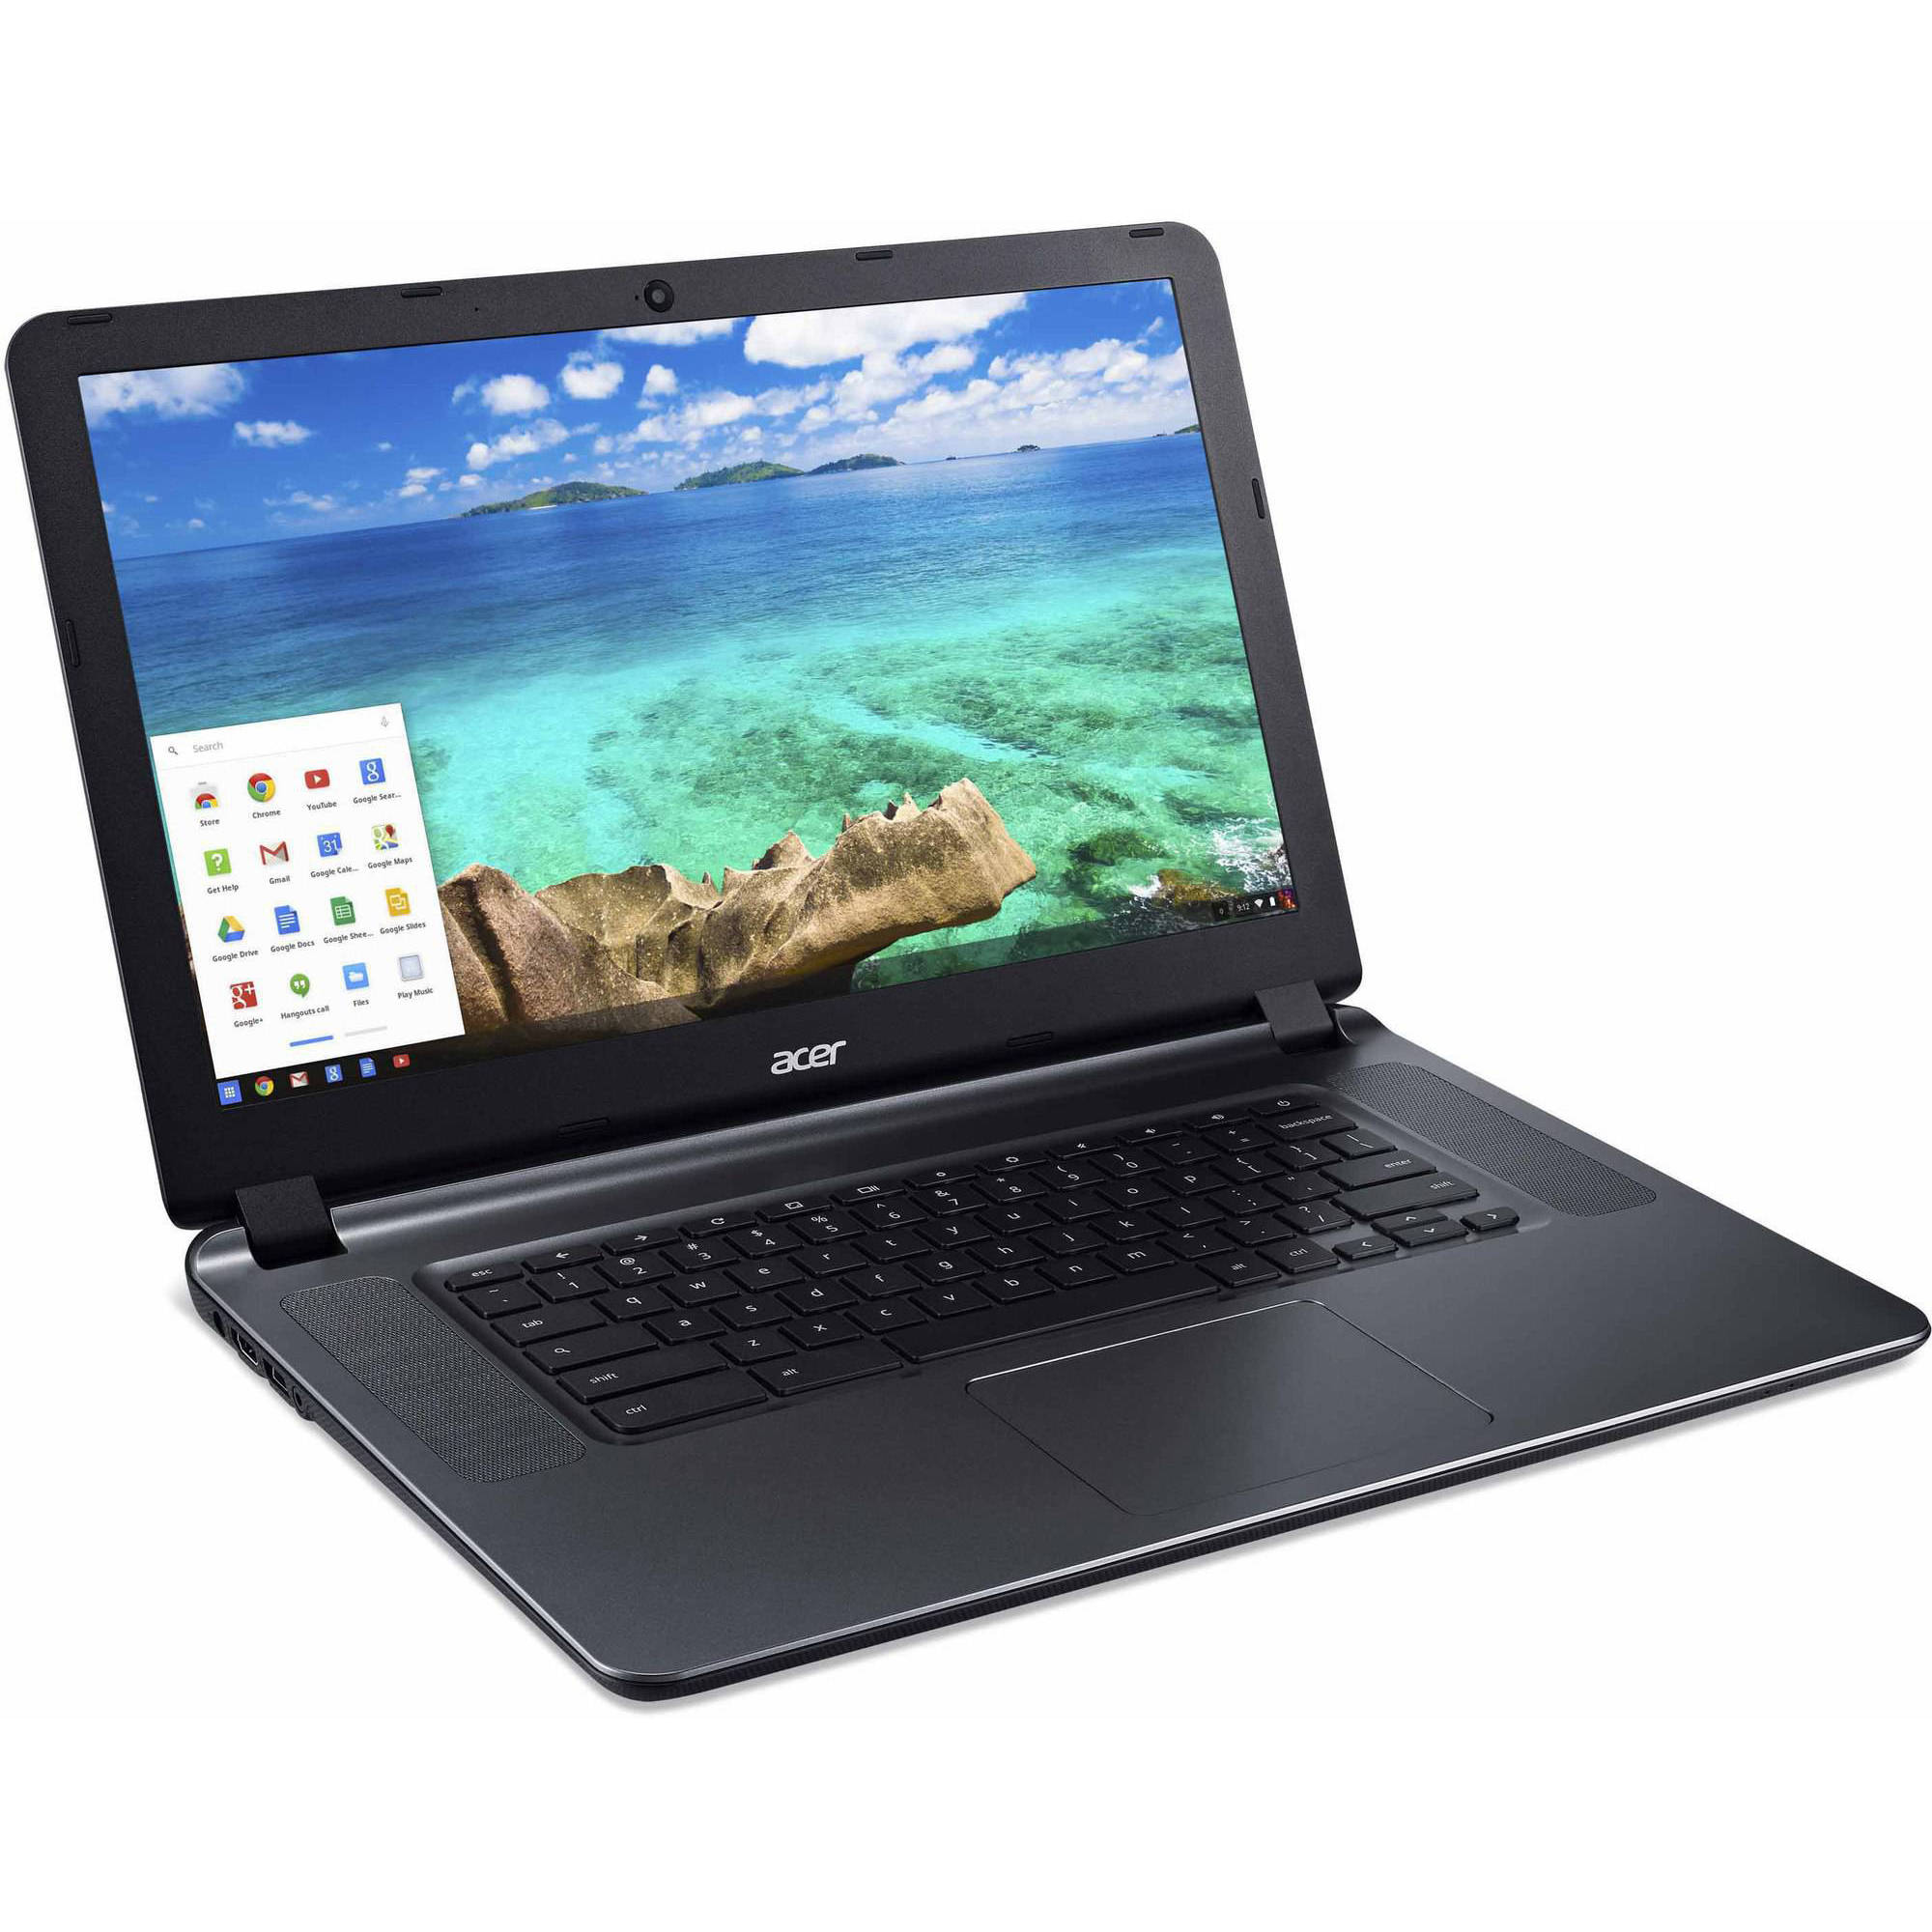 Refurbished Acer CB3-532-C47C 15.6 Chromebook Intel Celeron N3060 1.60 GHz 2GB RAM 16GB eMMC